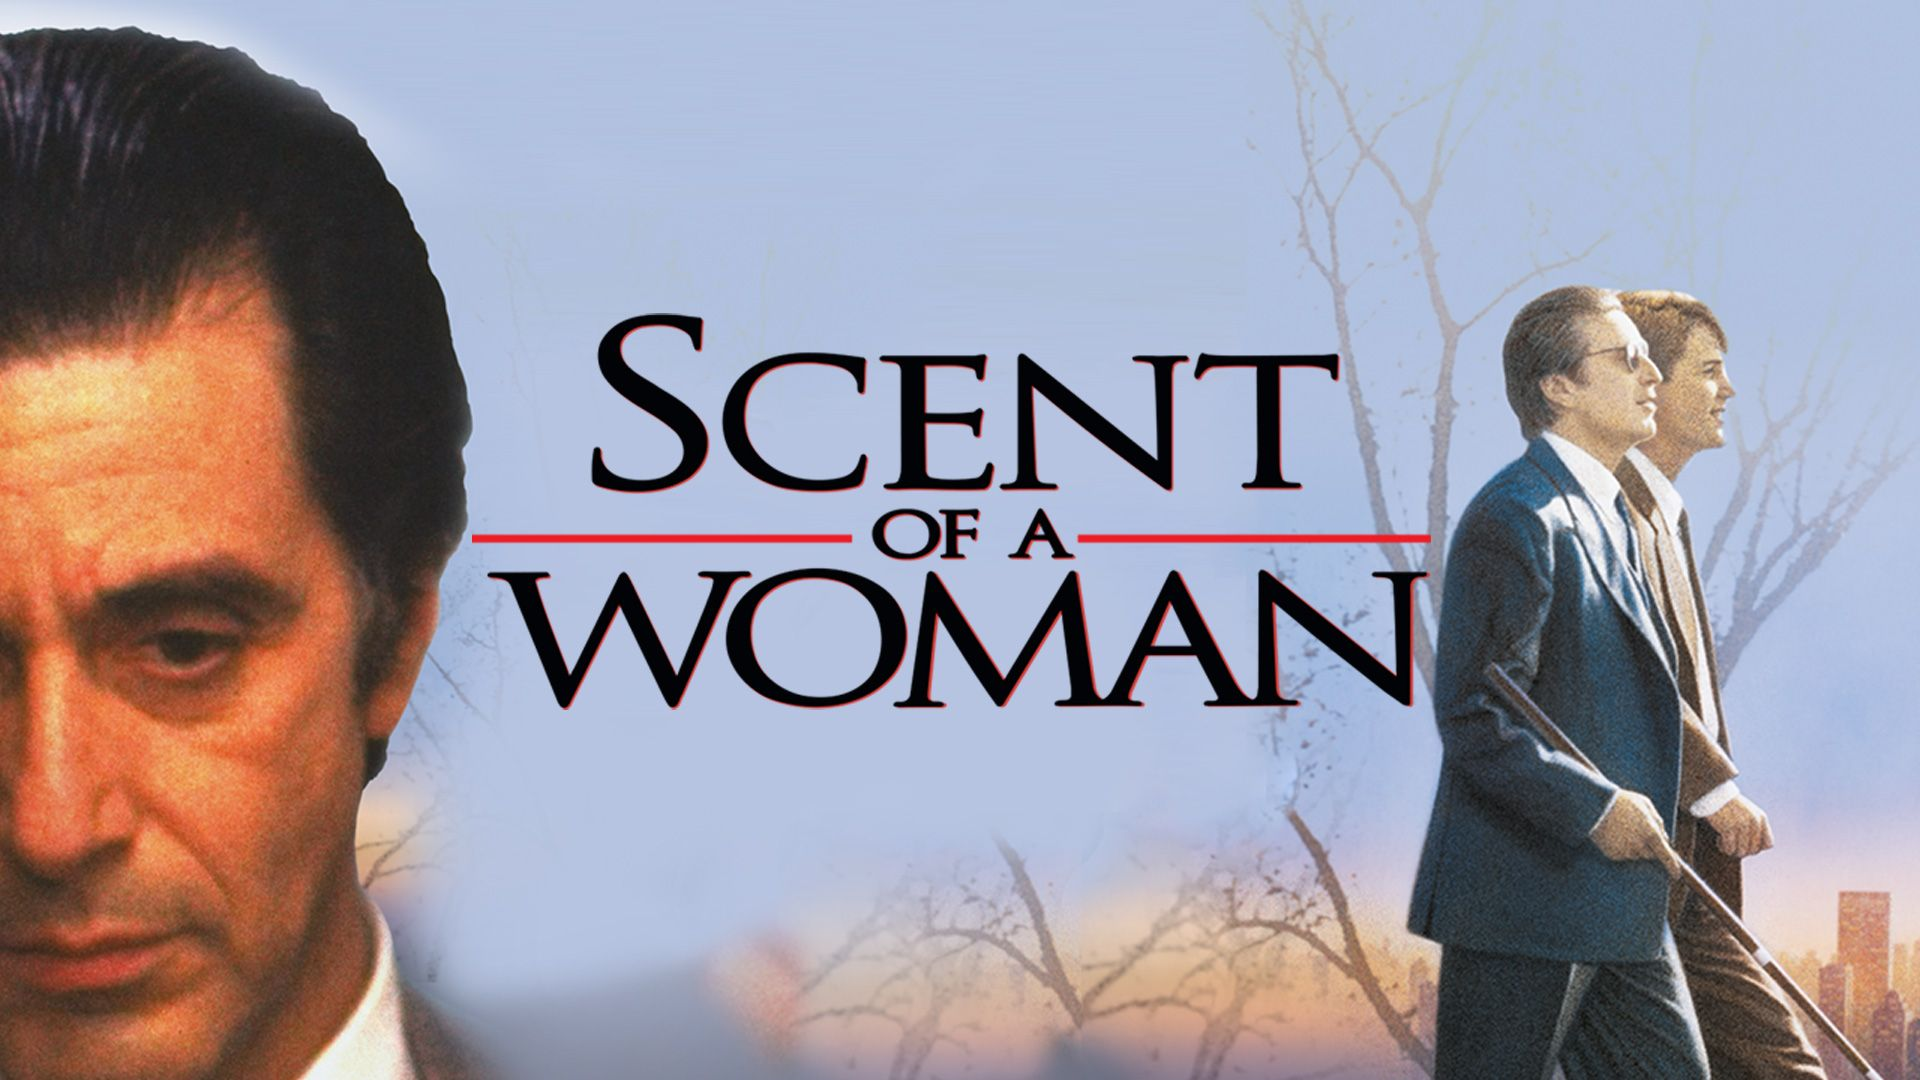 Scent Of A Woman Wallpapers Top Free Scent Of A Woman Backgrounds Wallpaperaccess